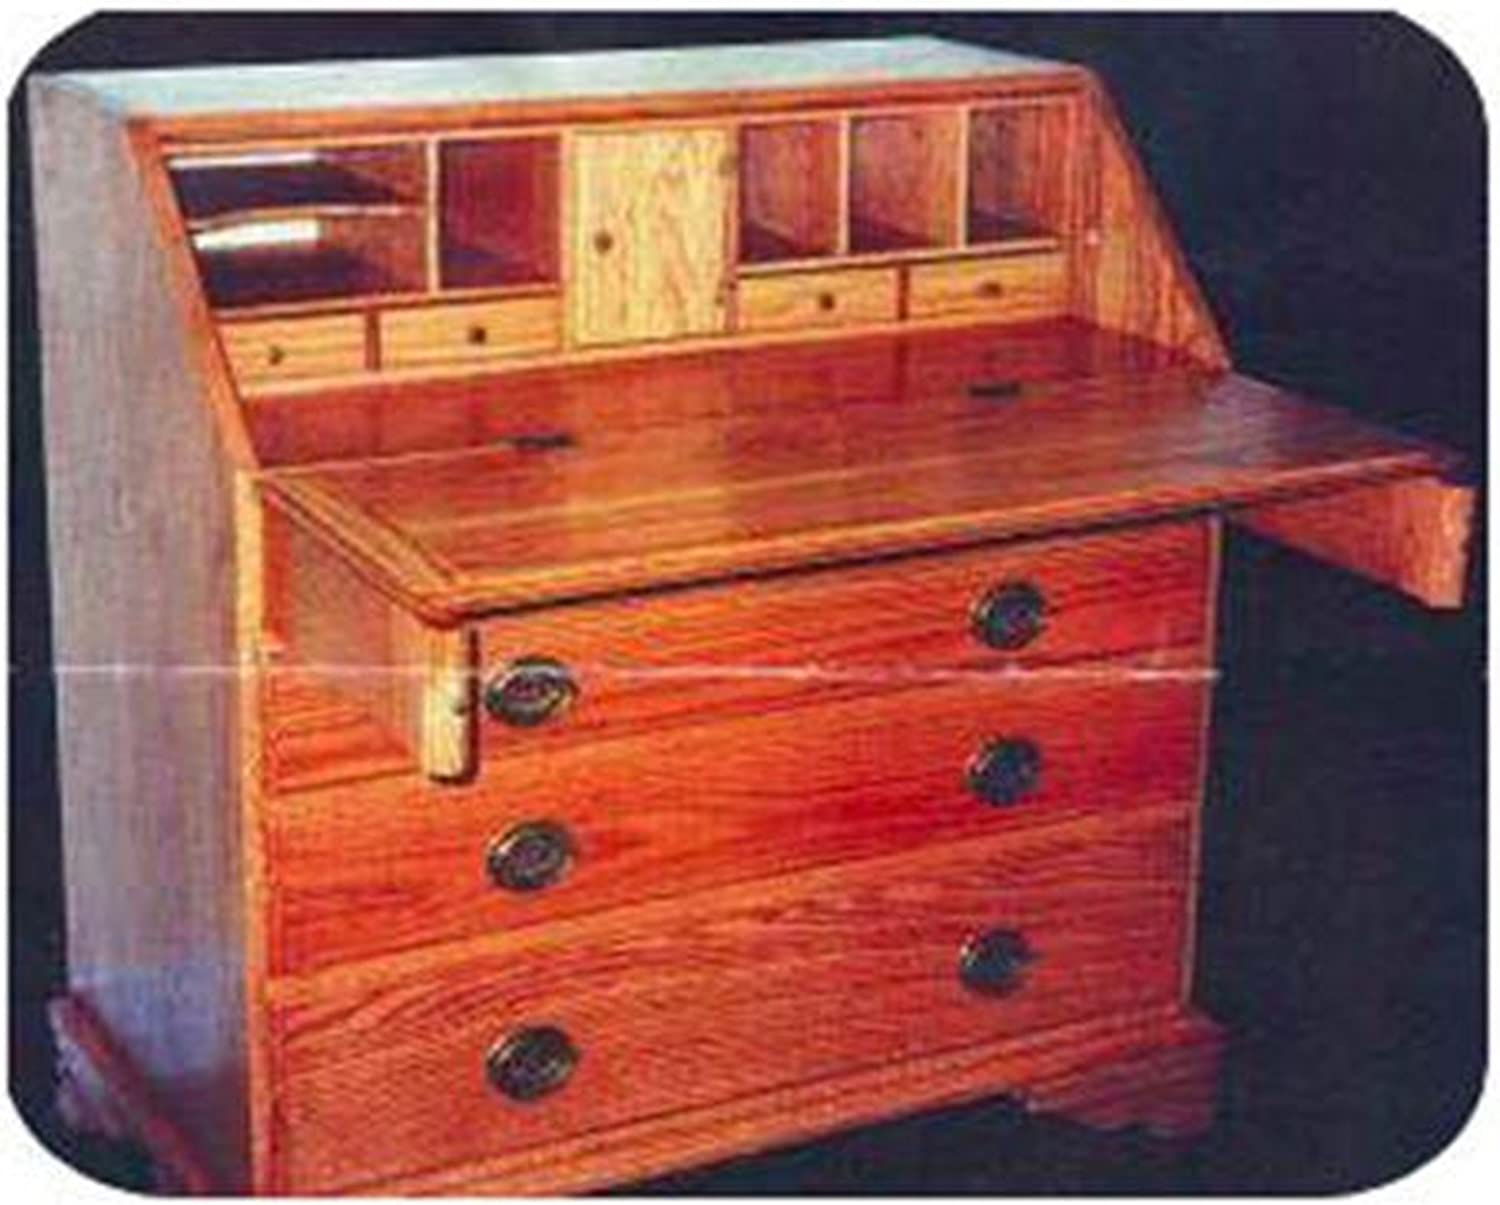 Woodworking Project Paper Plan To Build Drop Front Desk Indoor Furniture Woodworking Project Plans Amazon Com